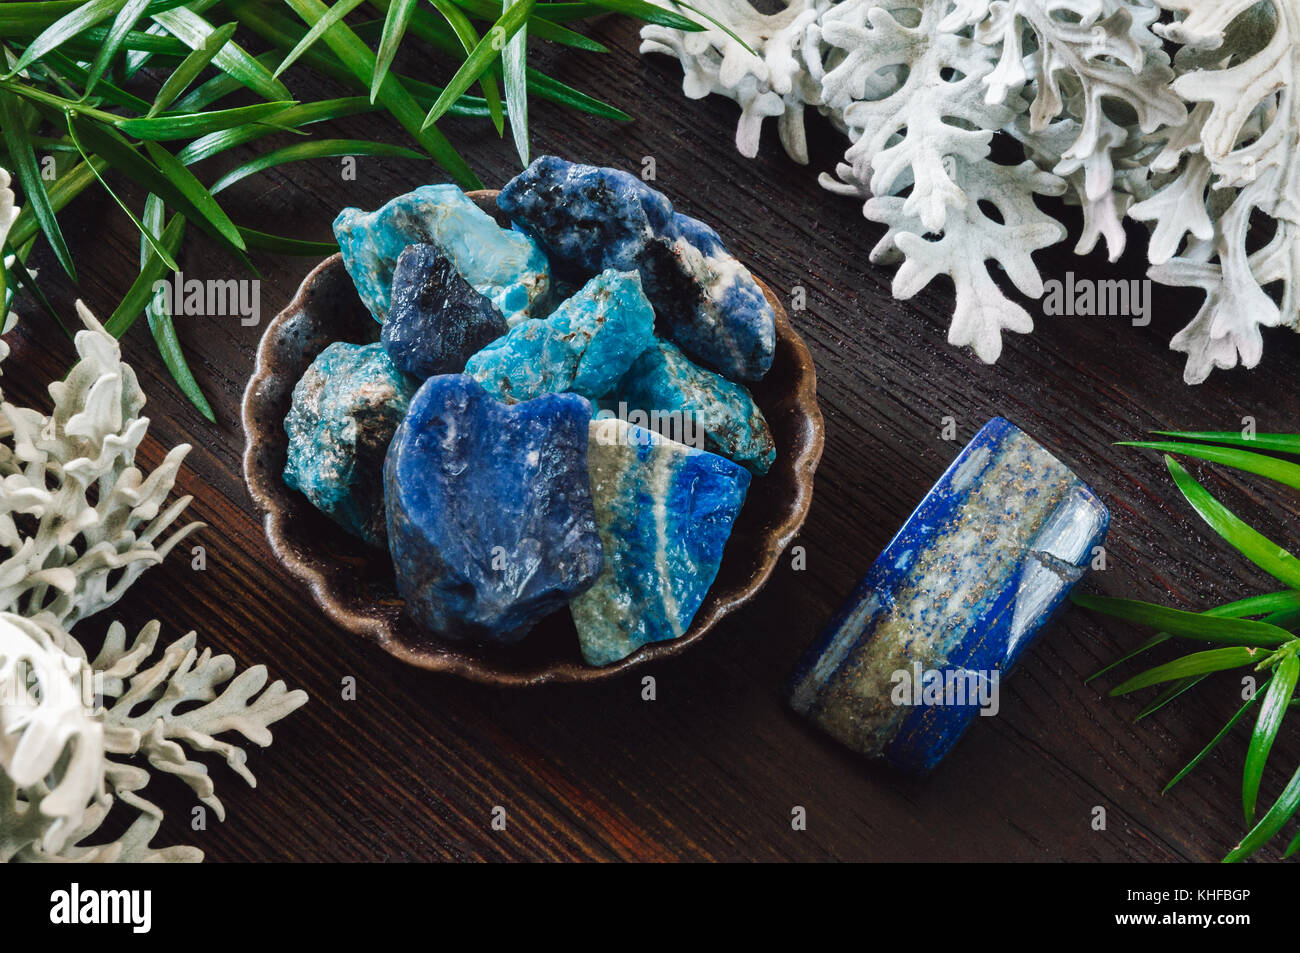 Stones of the Throat Chakra on Dark Table - Stock Image